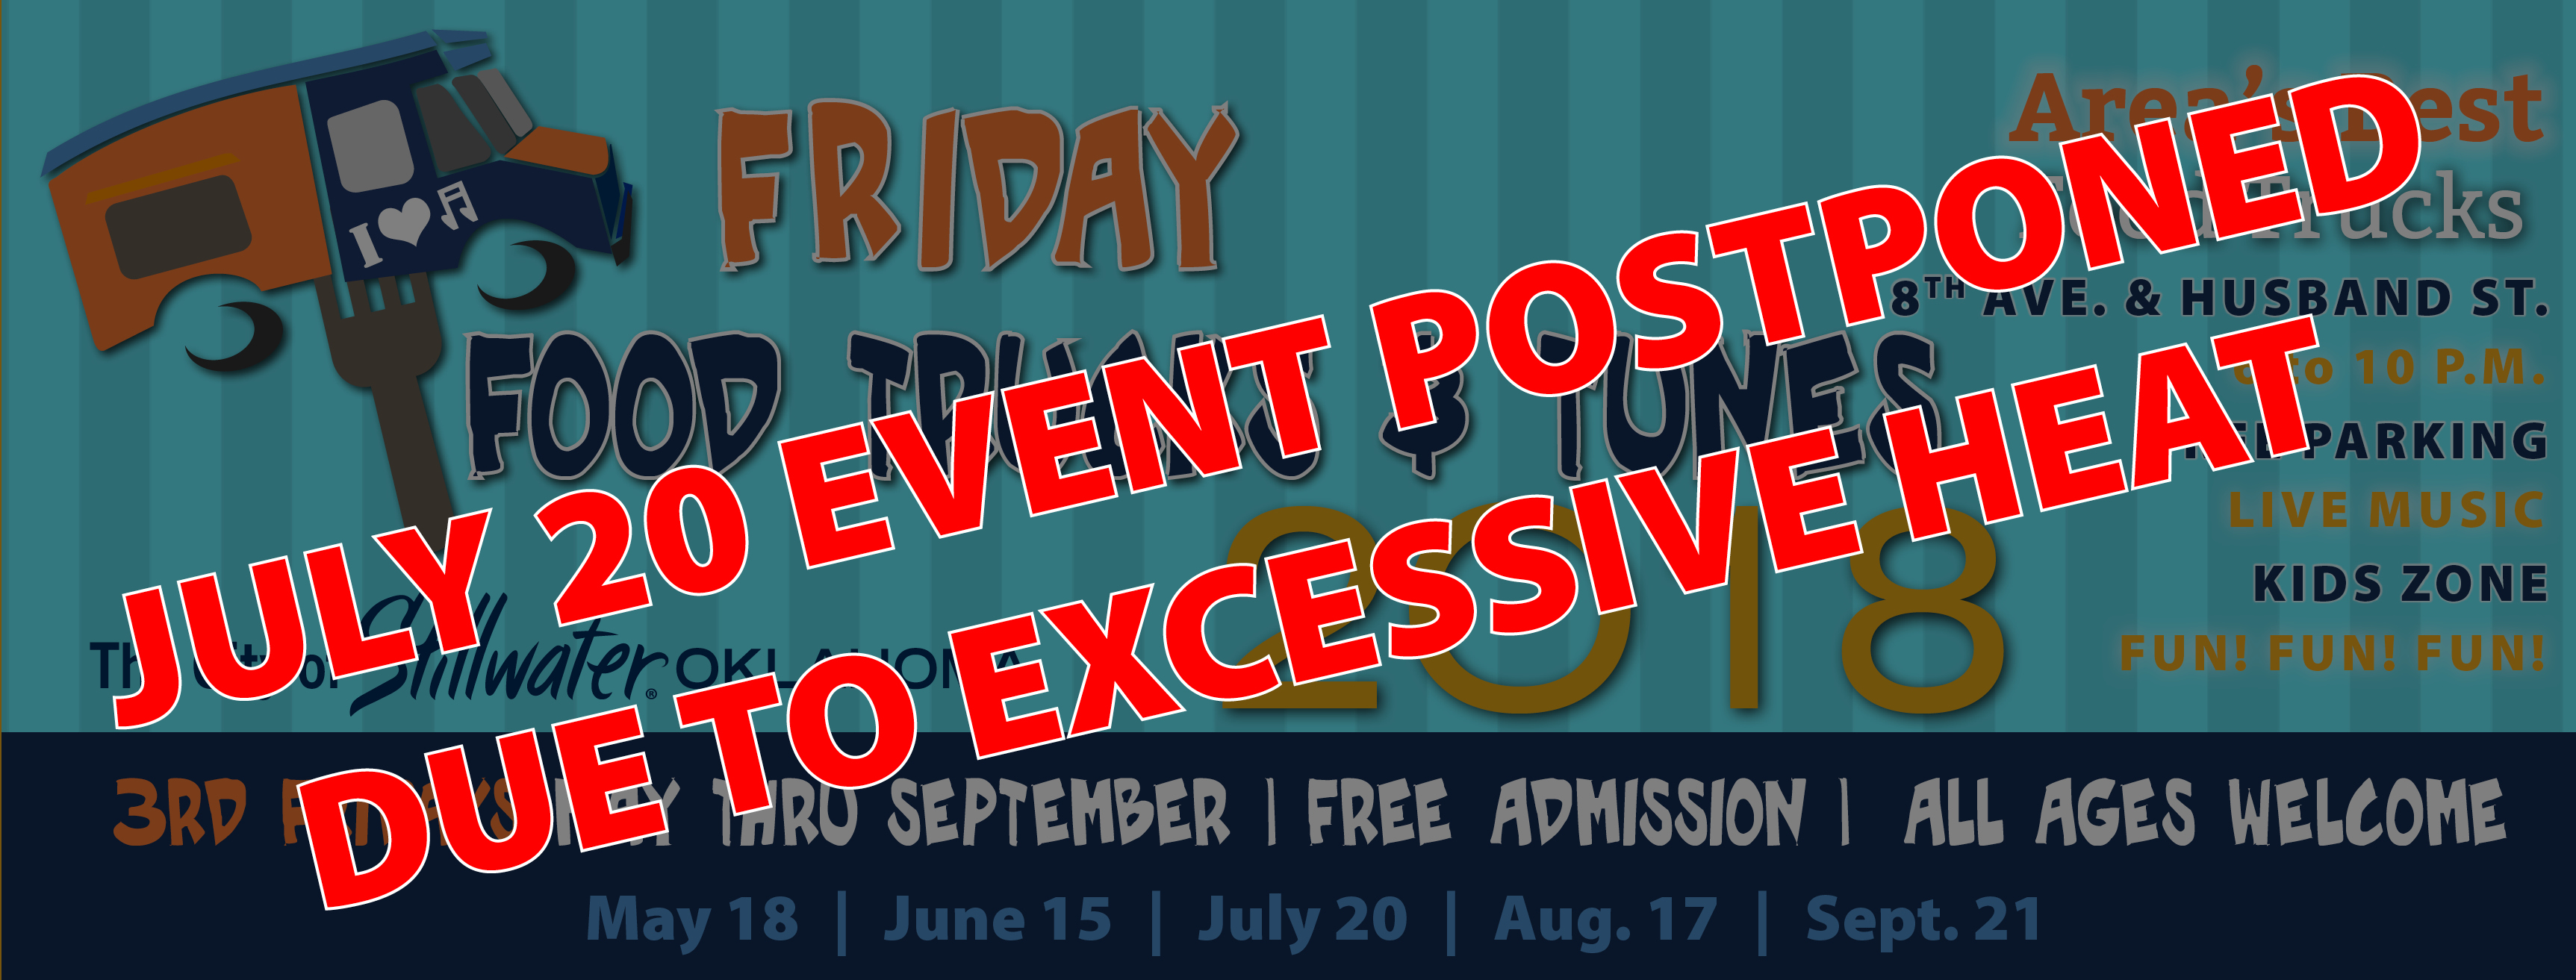 Friday Food Trucks and Tunes July 20 Postponement Banner